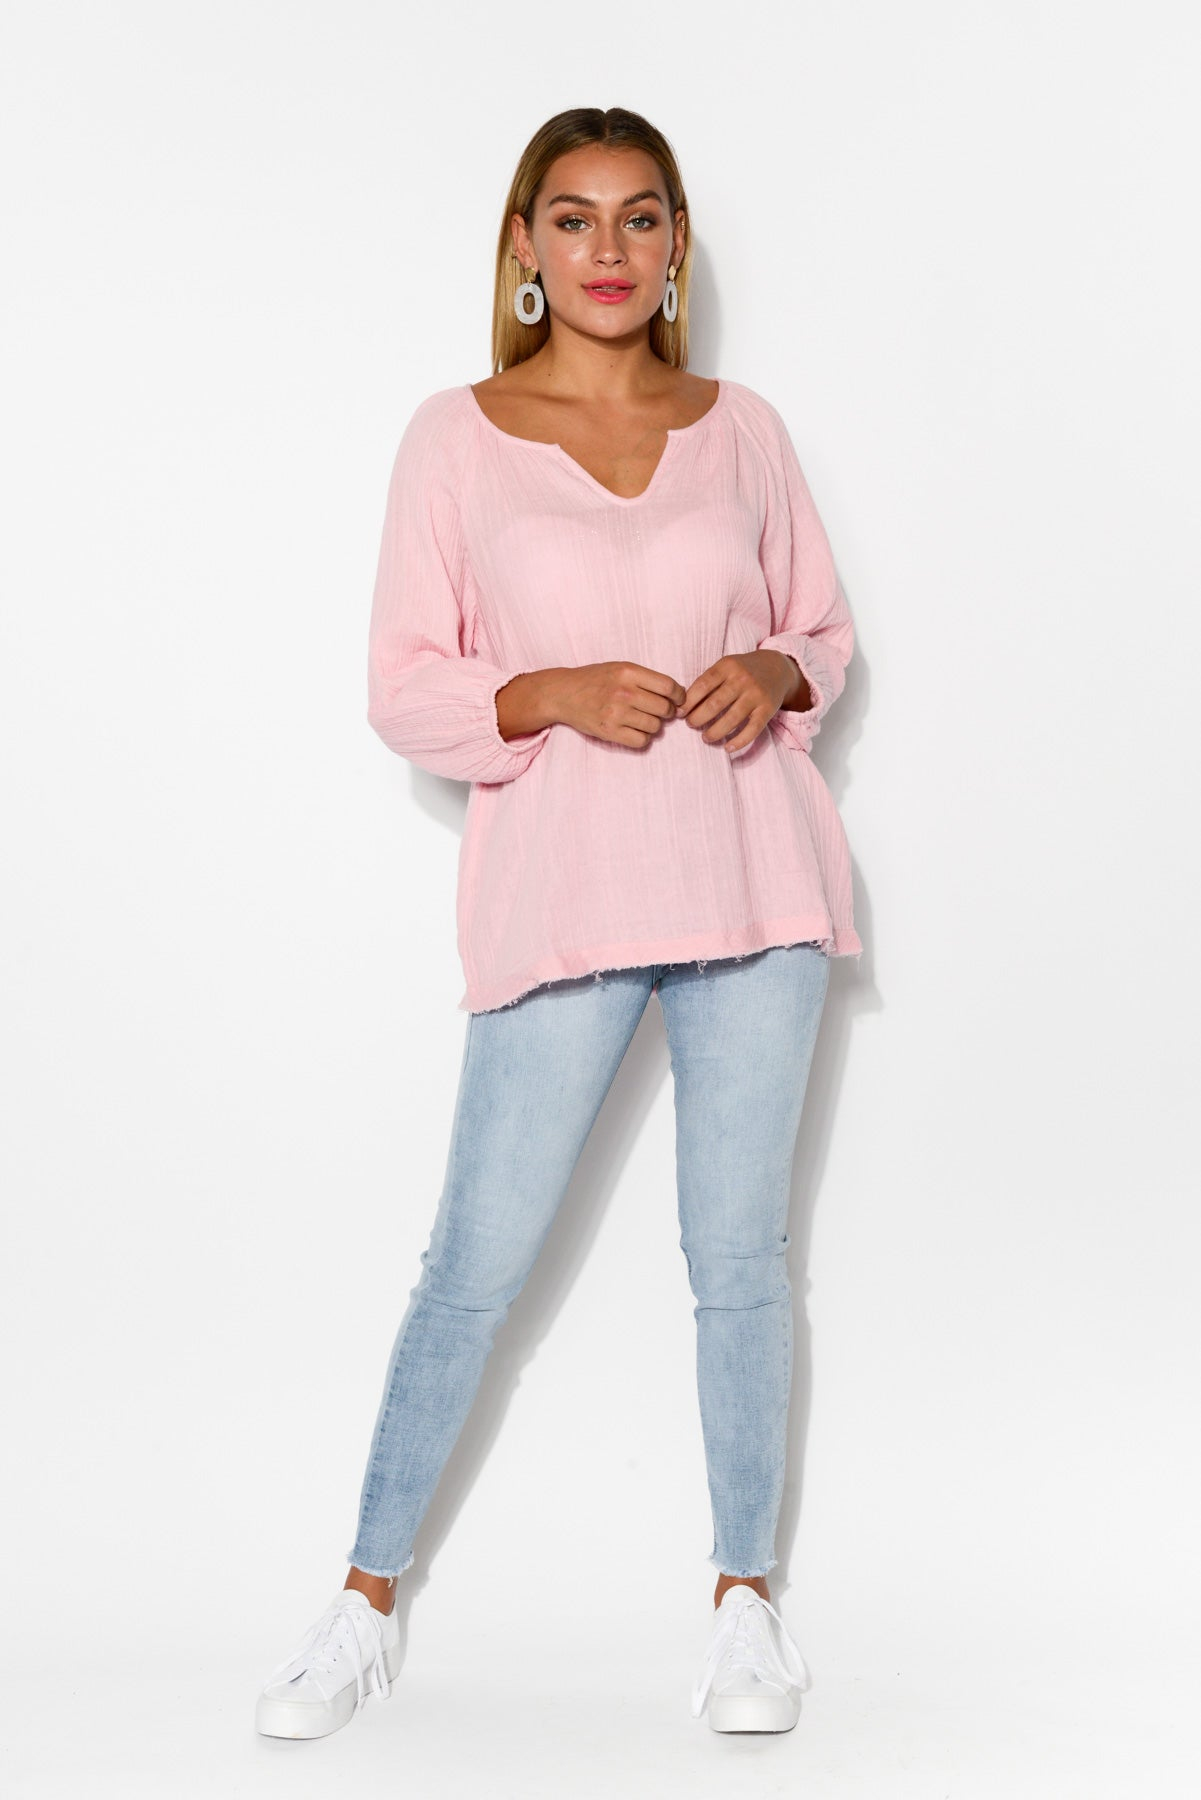 Prim Pink Crinkle Cotton Top - Blue Bungalow